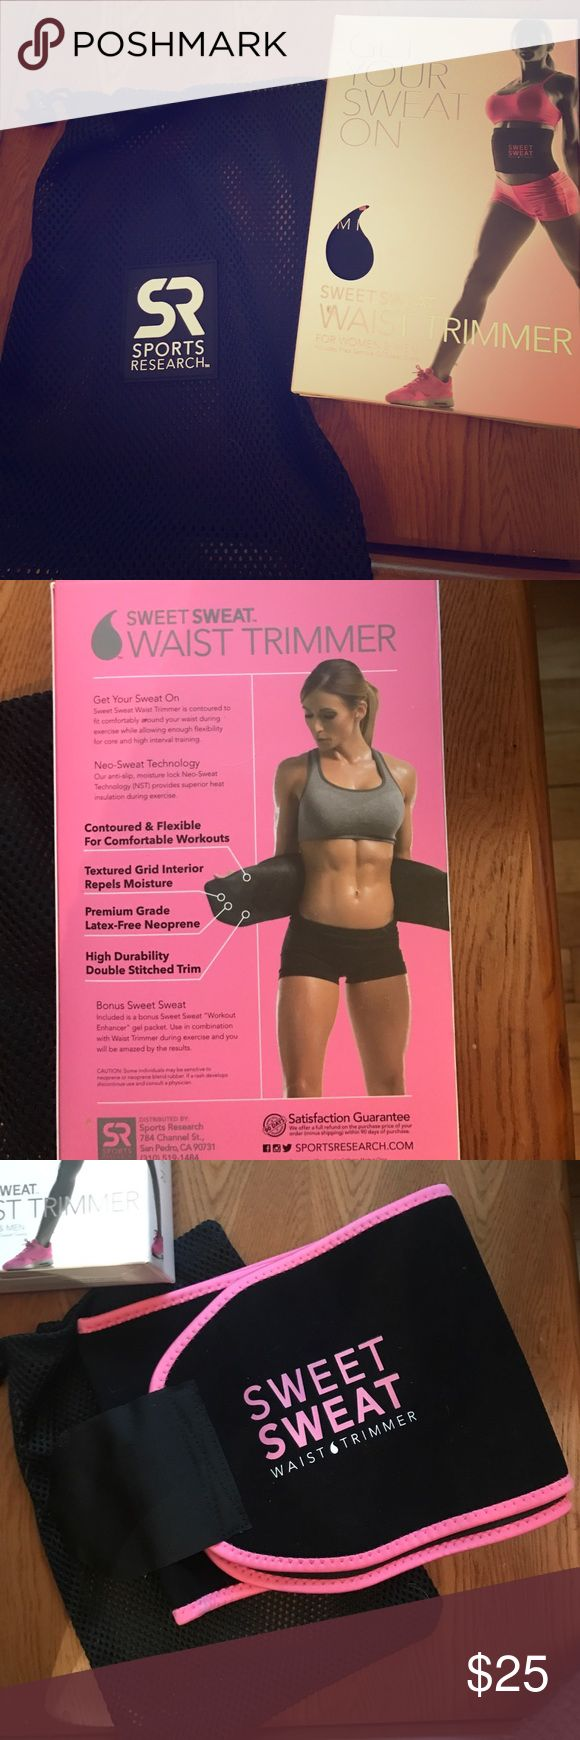 Sweet sweat -pink- waist trimmer Never worn. Bought thinking I would use, and never have. Wash bag included Other